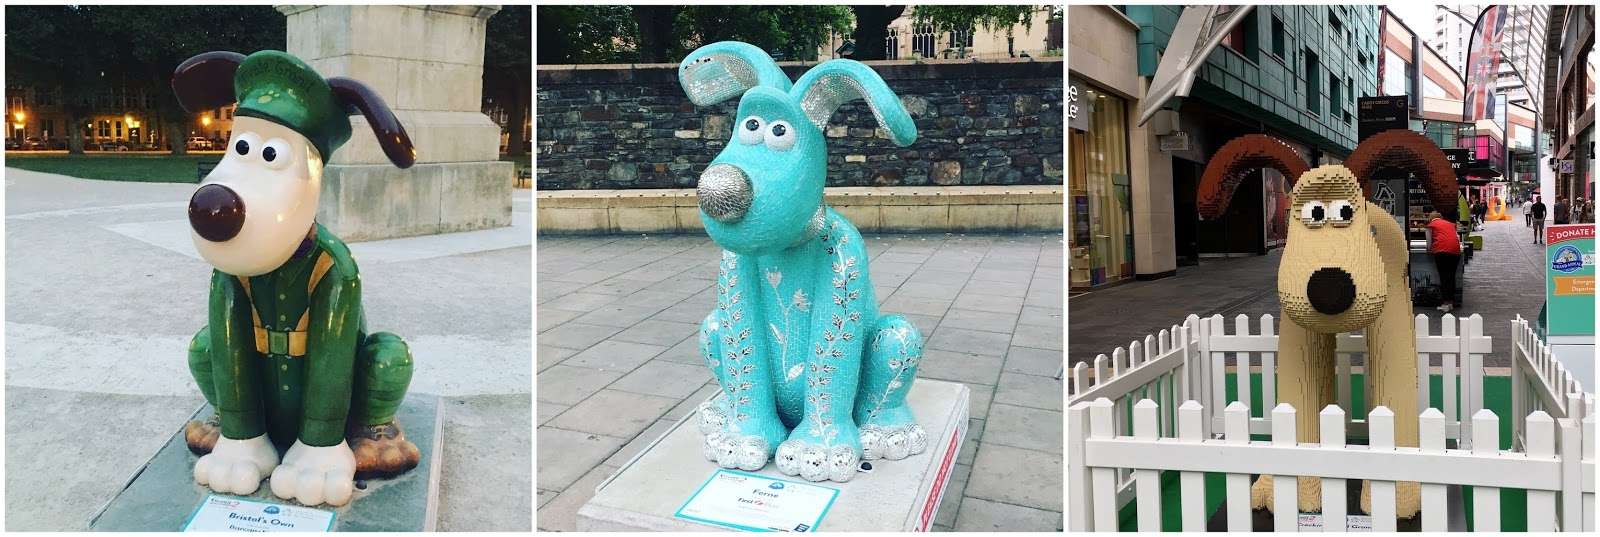 Gromit 2 Unleashed statues in Bristol